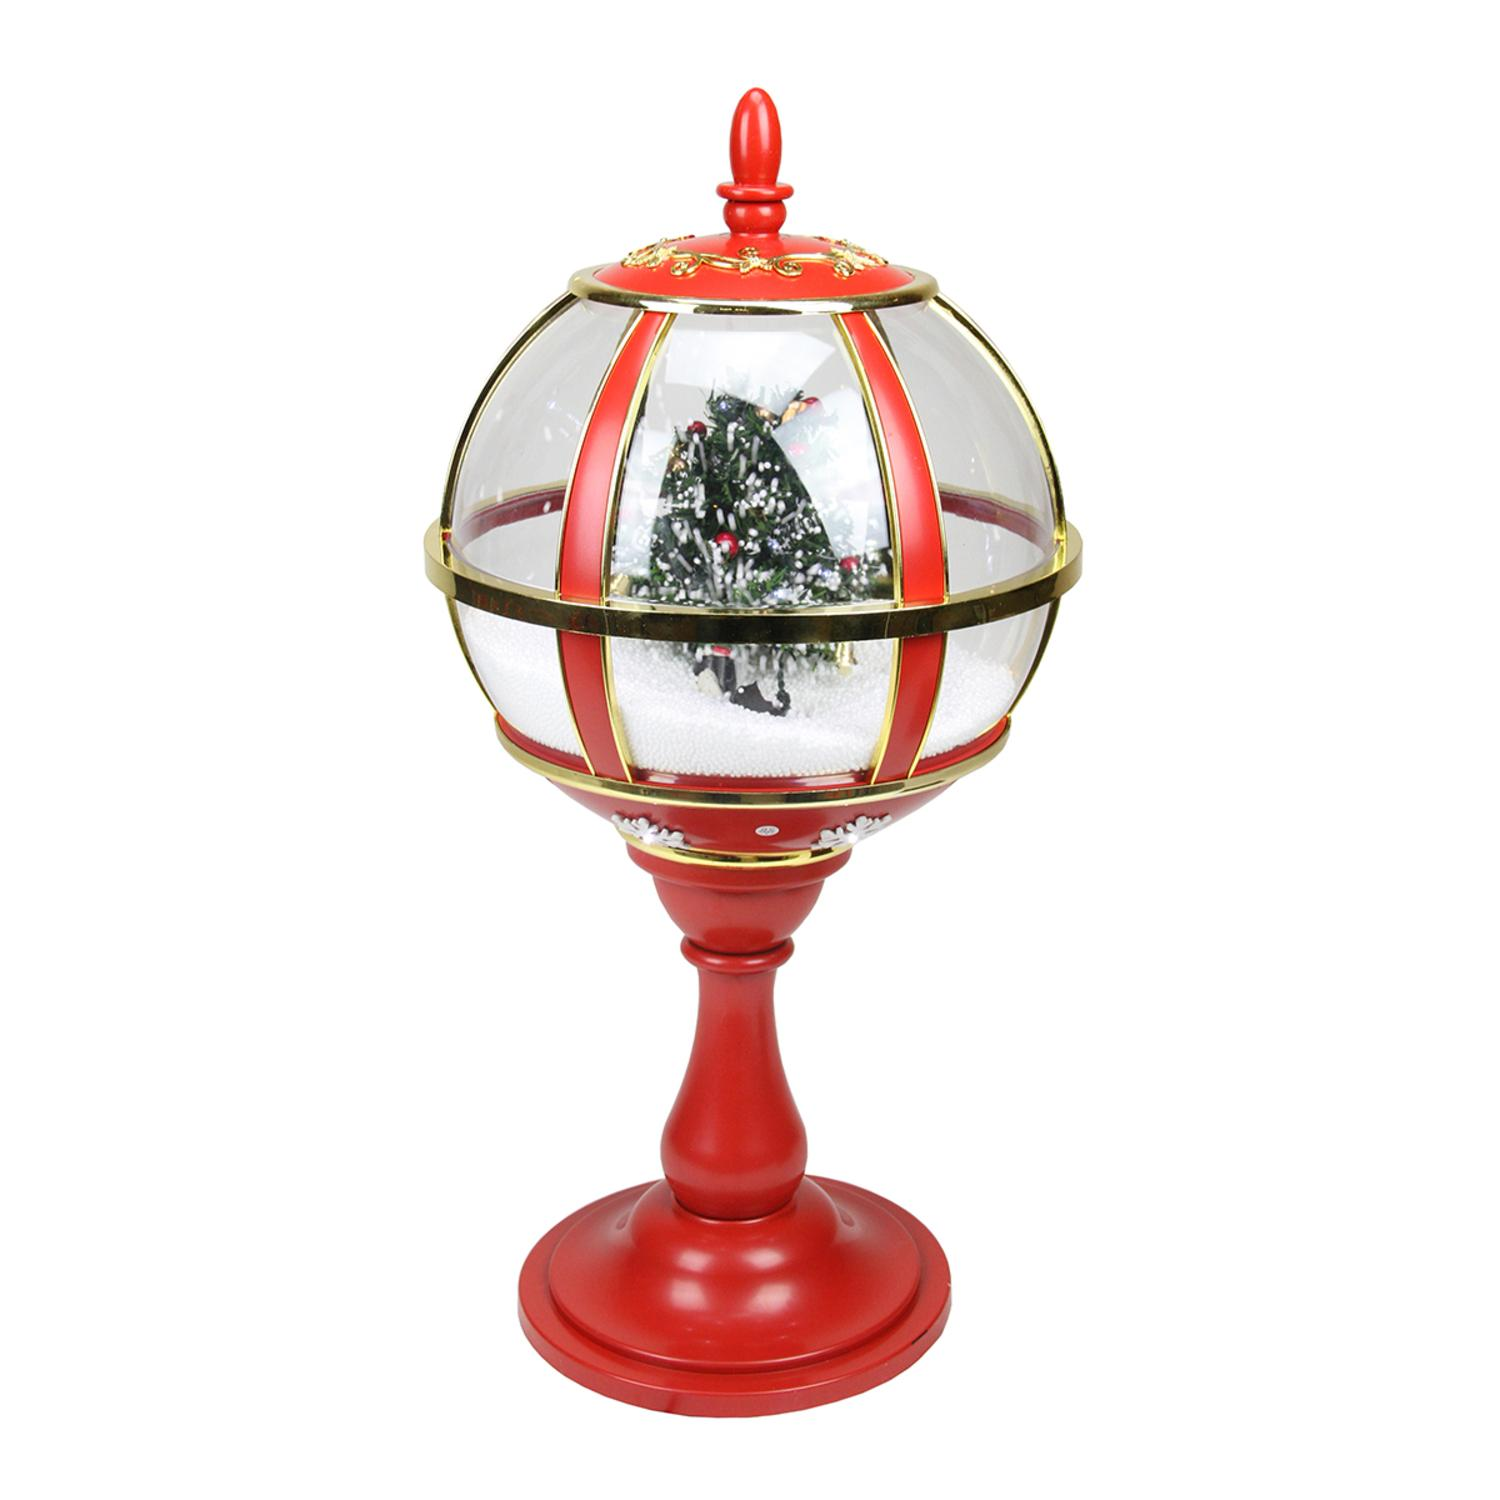 ''23.5'''' Lighted Red and Gold Musical Snowing Christmas Tree HOLIDAY Table Top Street Lamp''